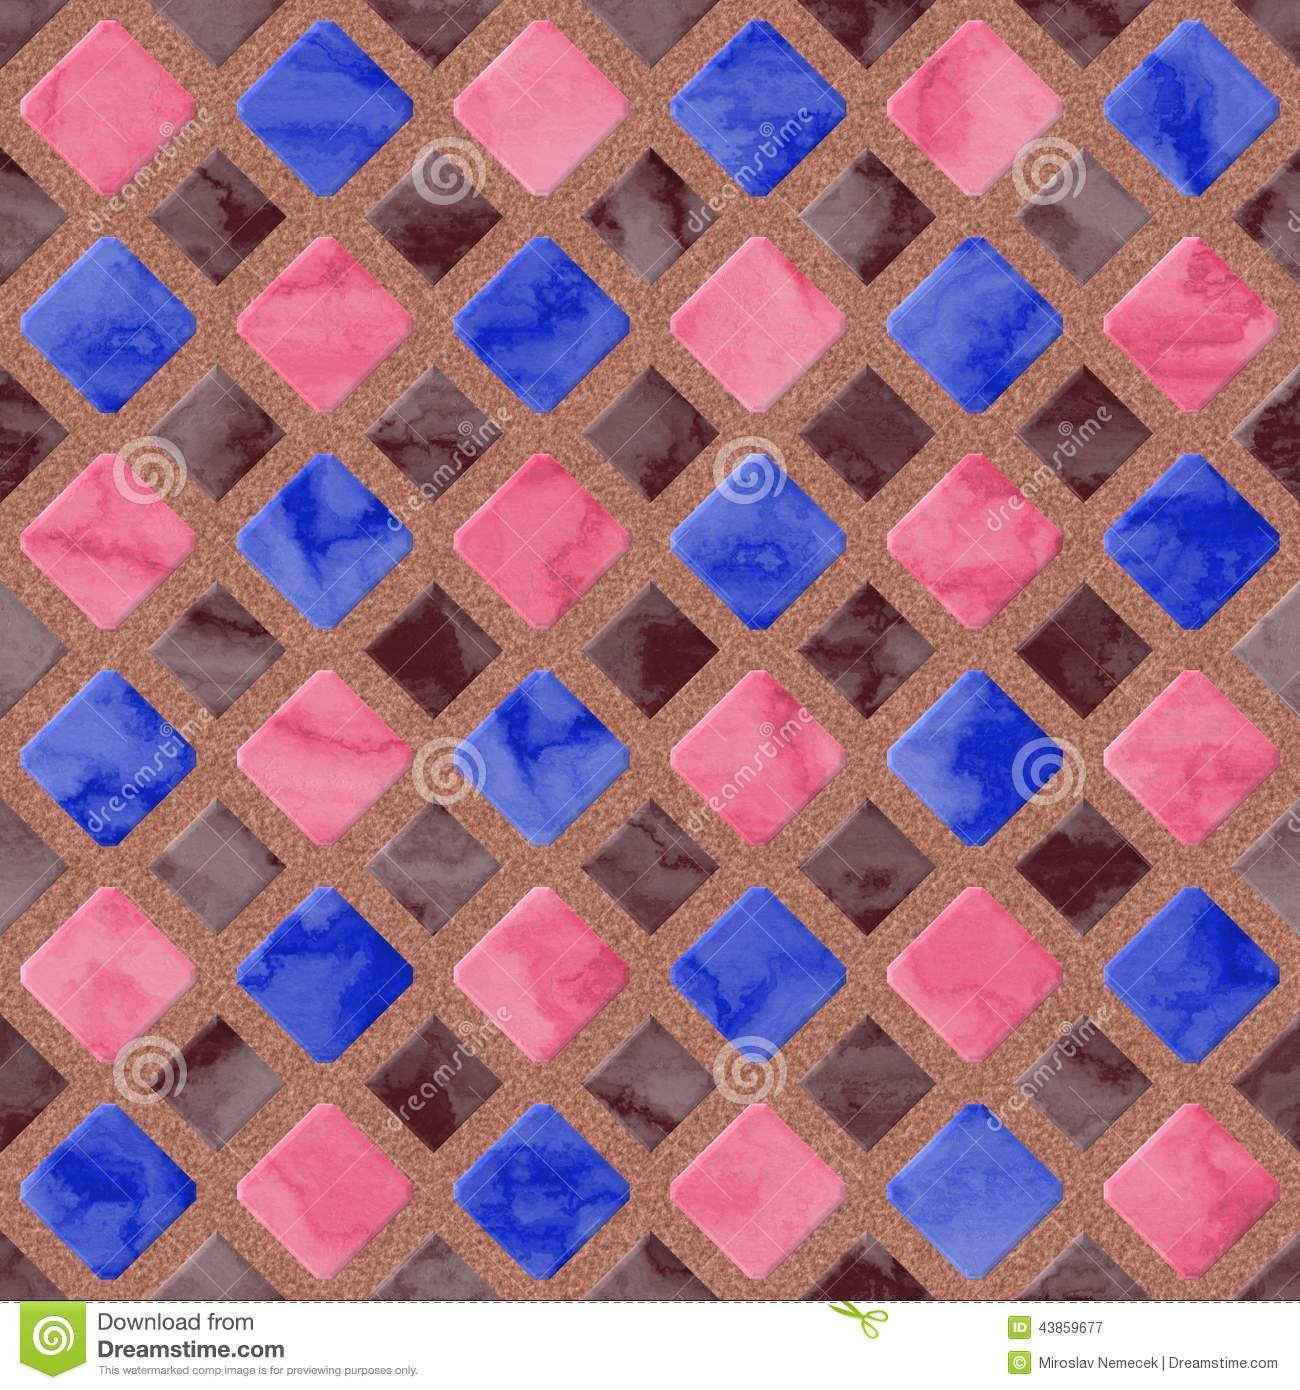 generated seamless tile background - photo #45